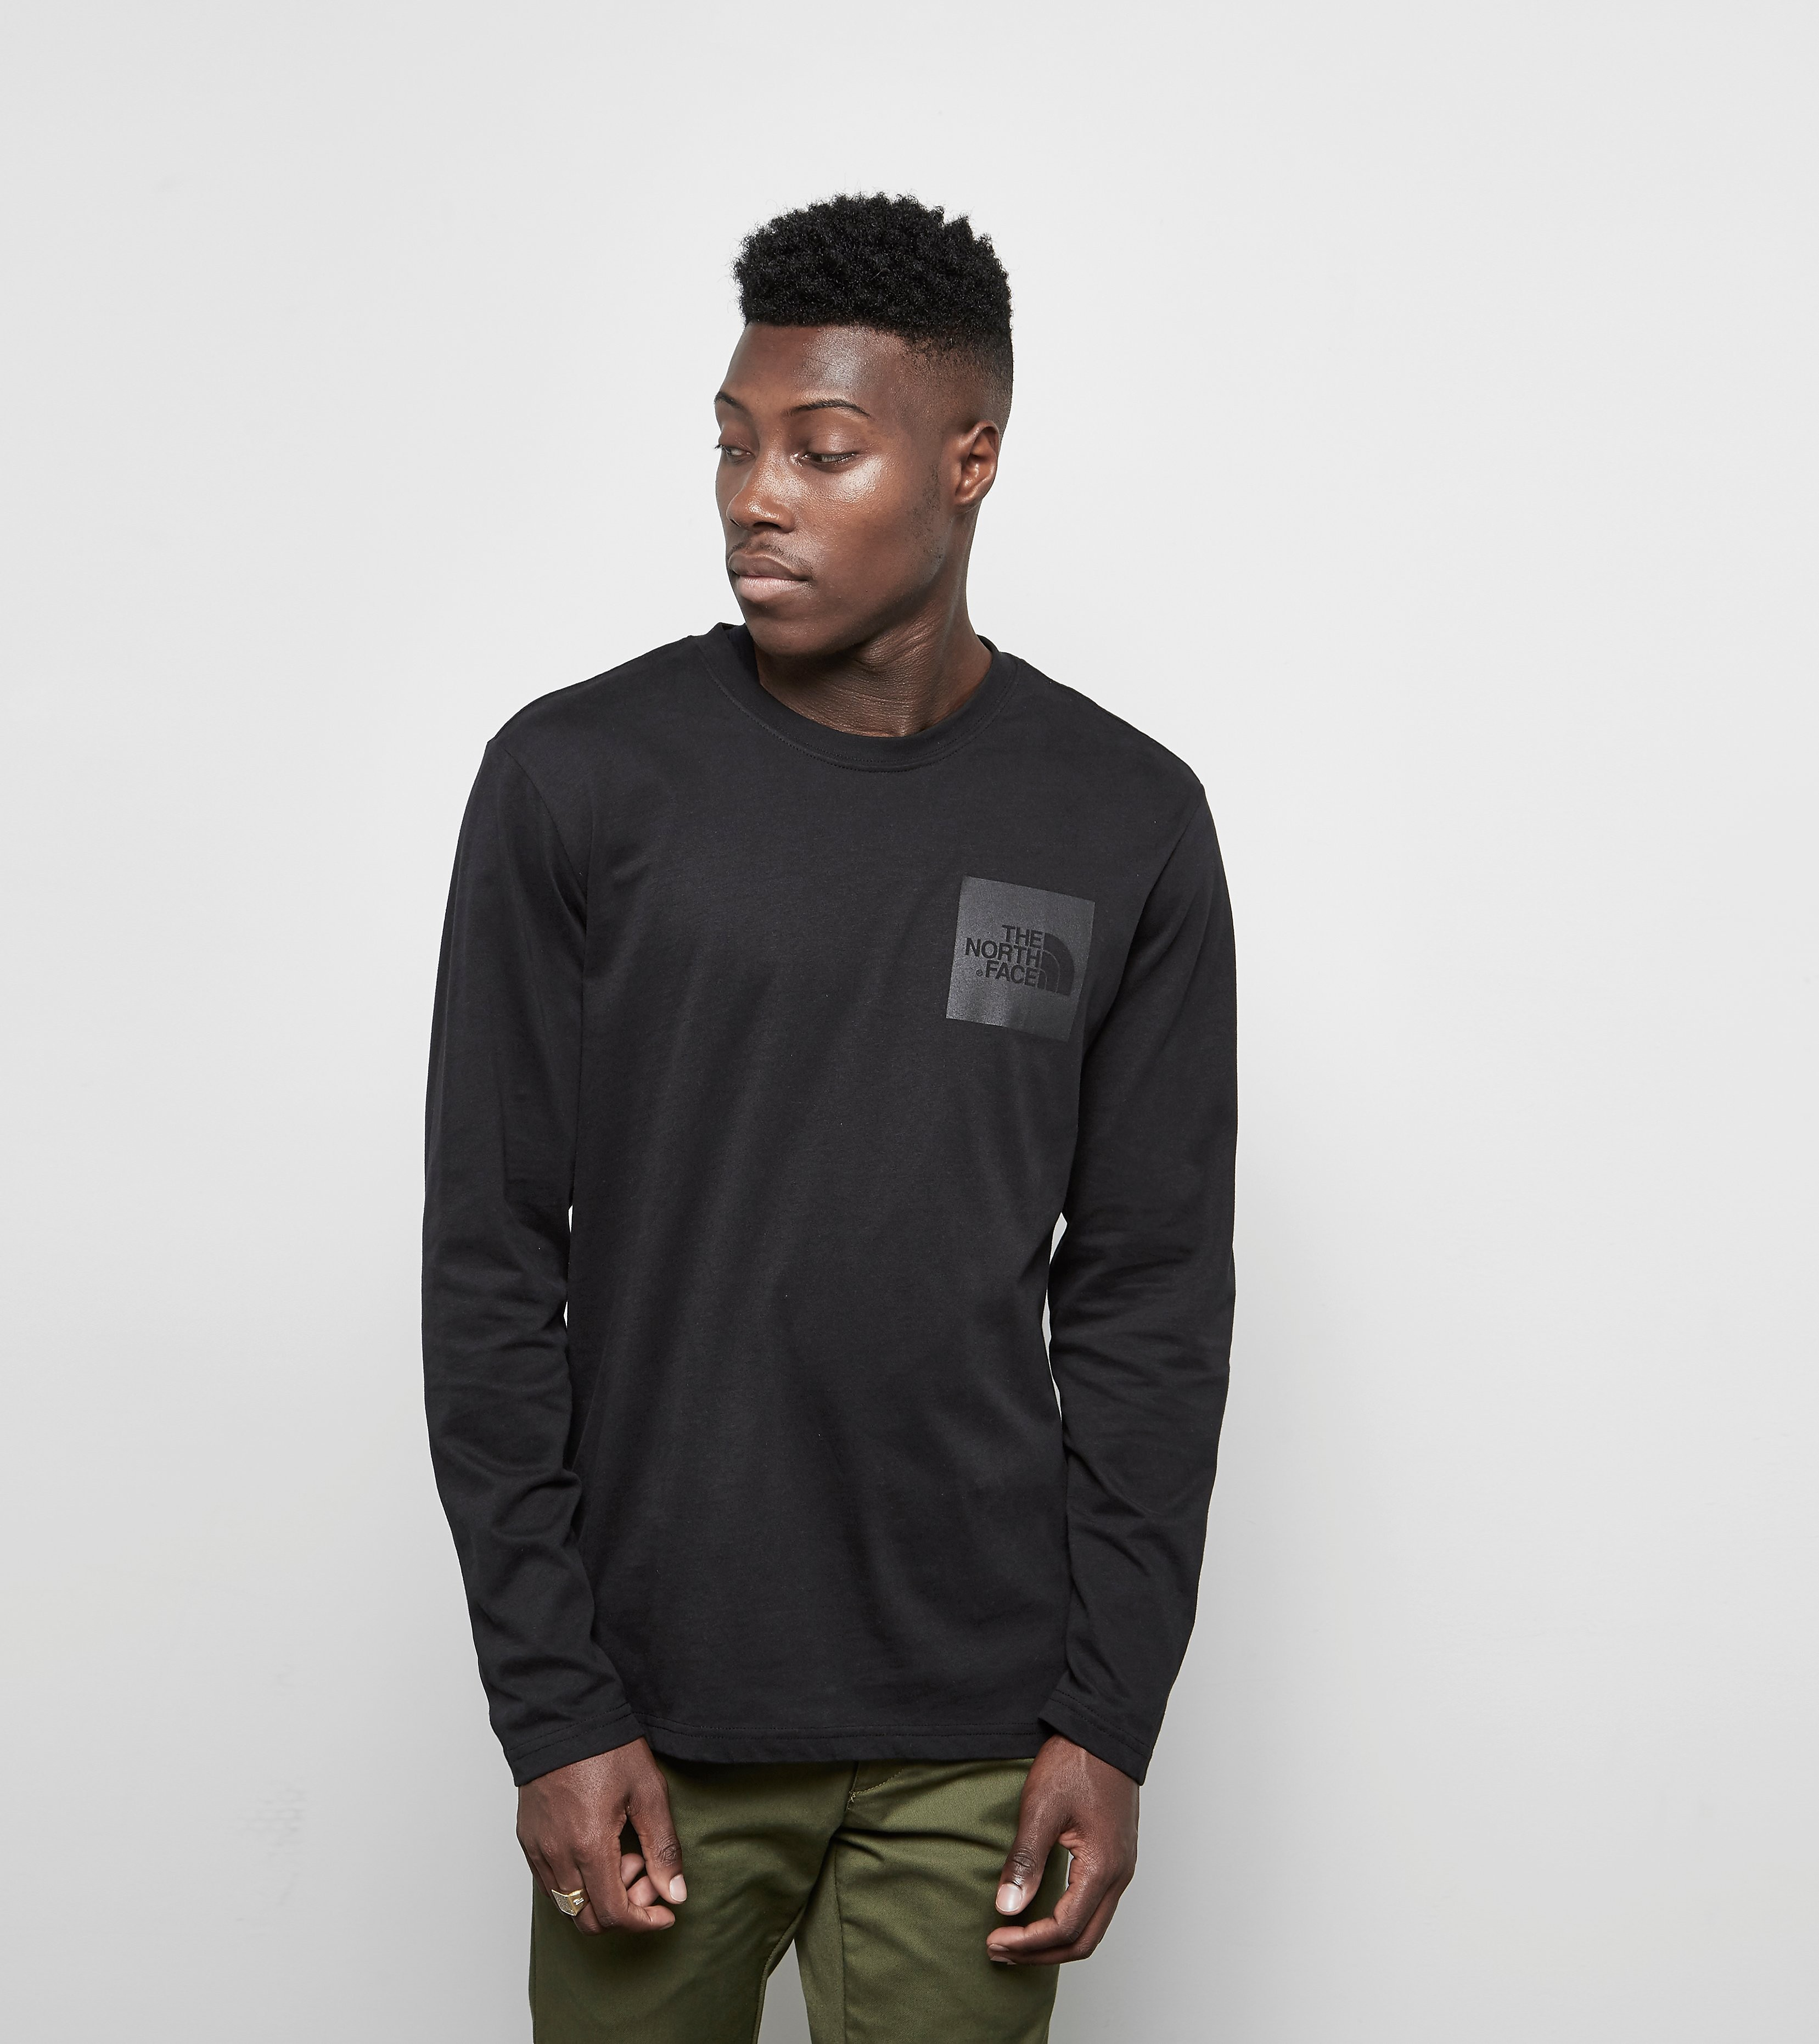 The North Face Long-Sleeved Fine T-Shirt